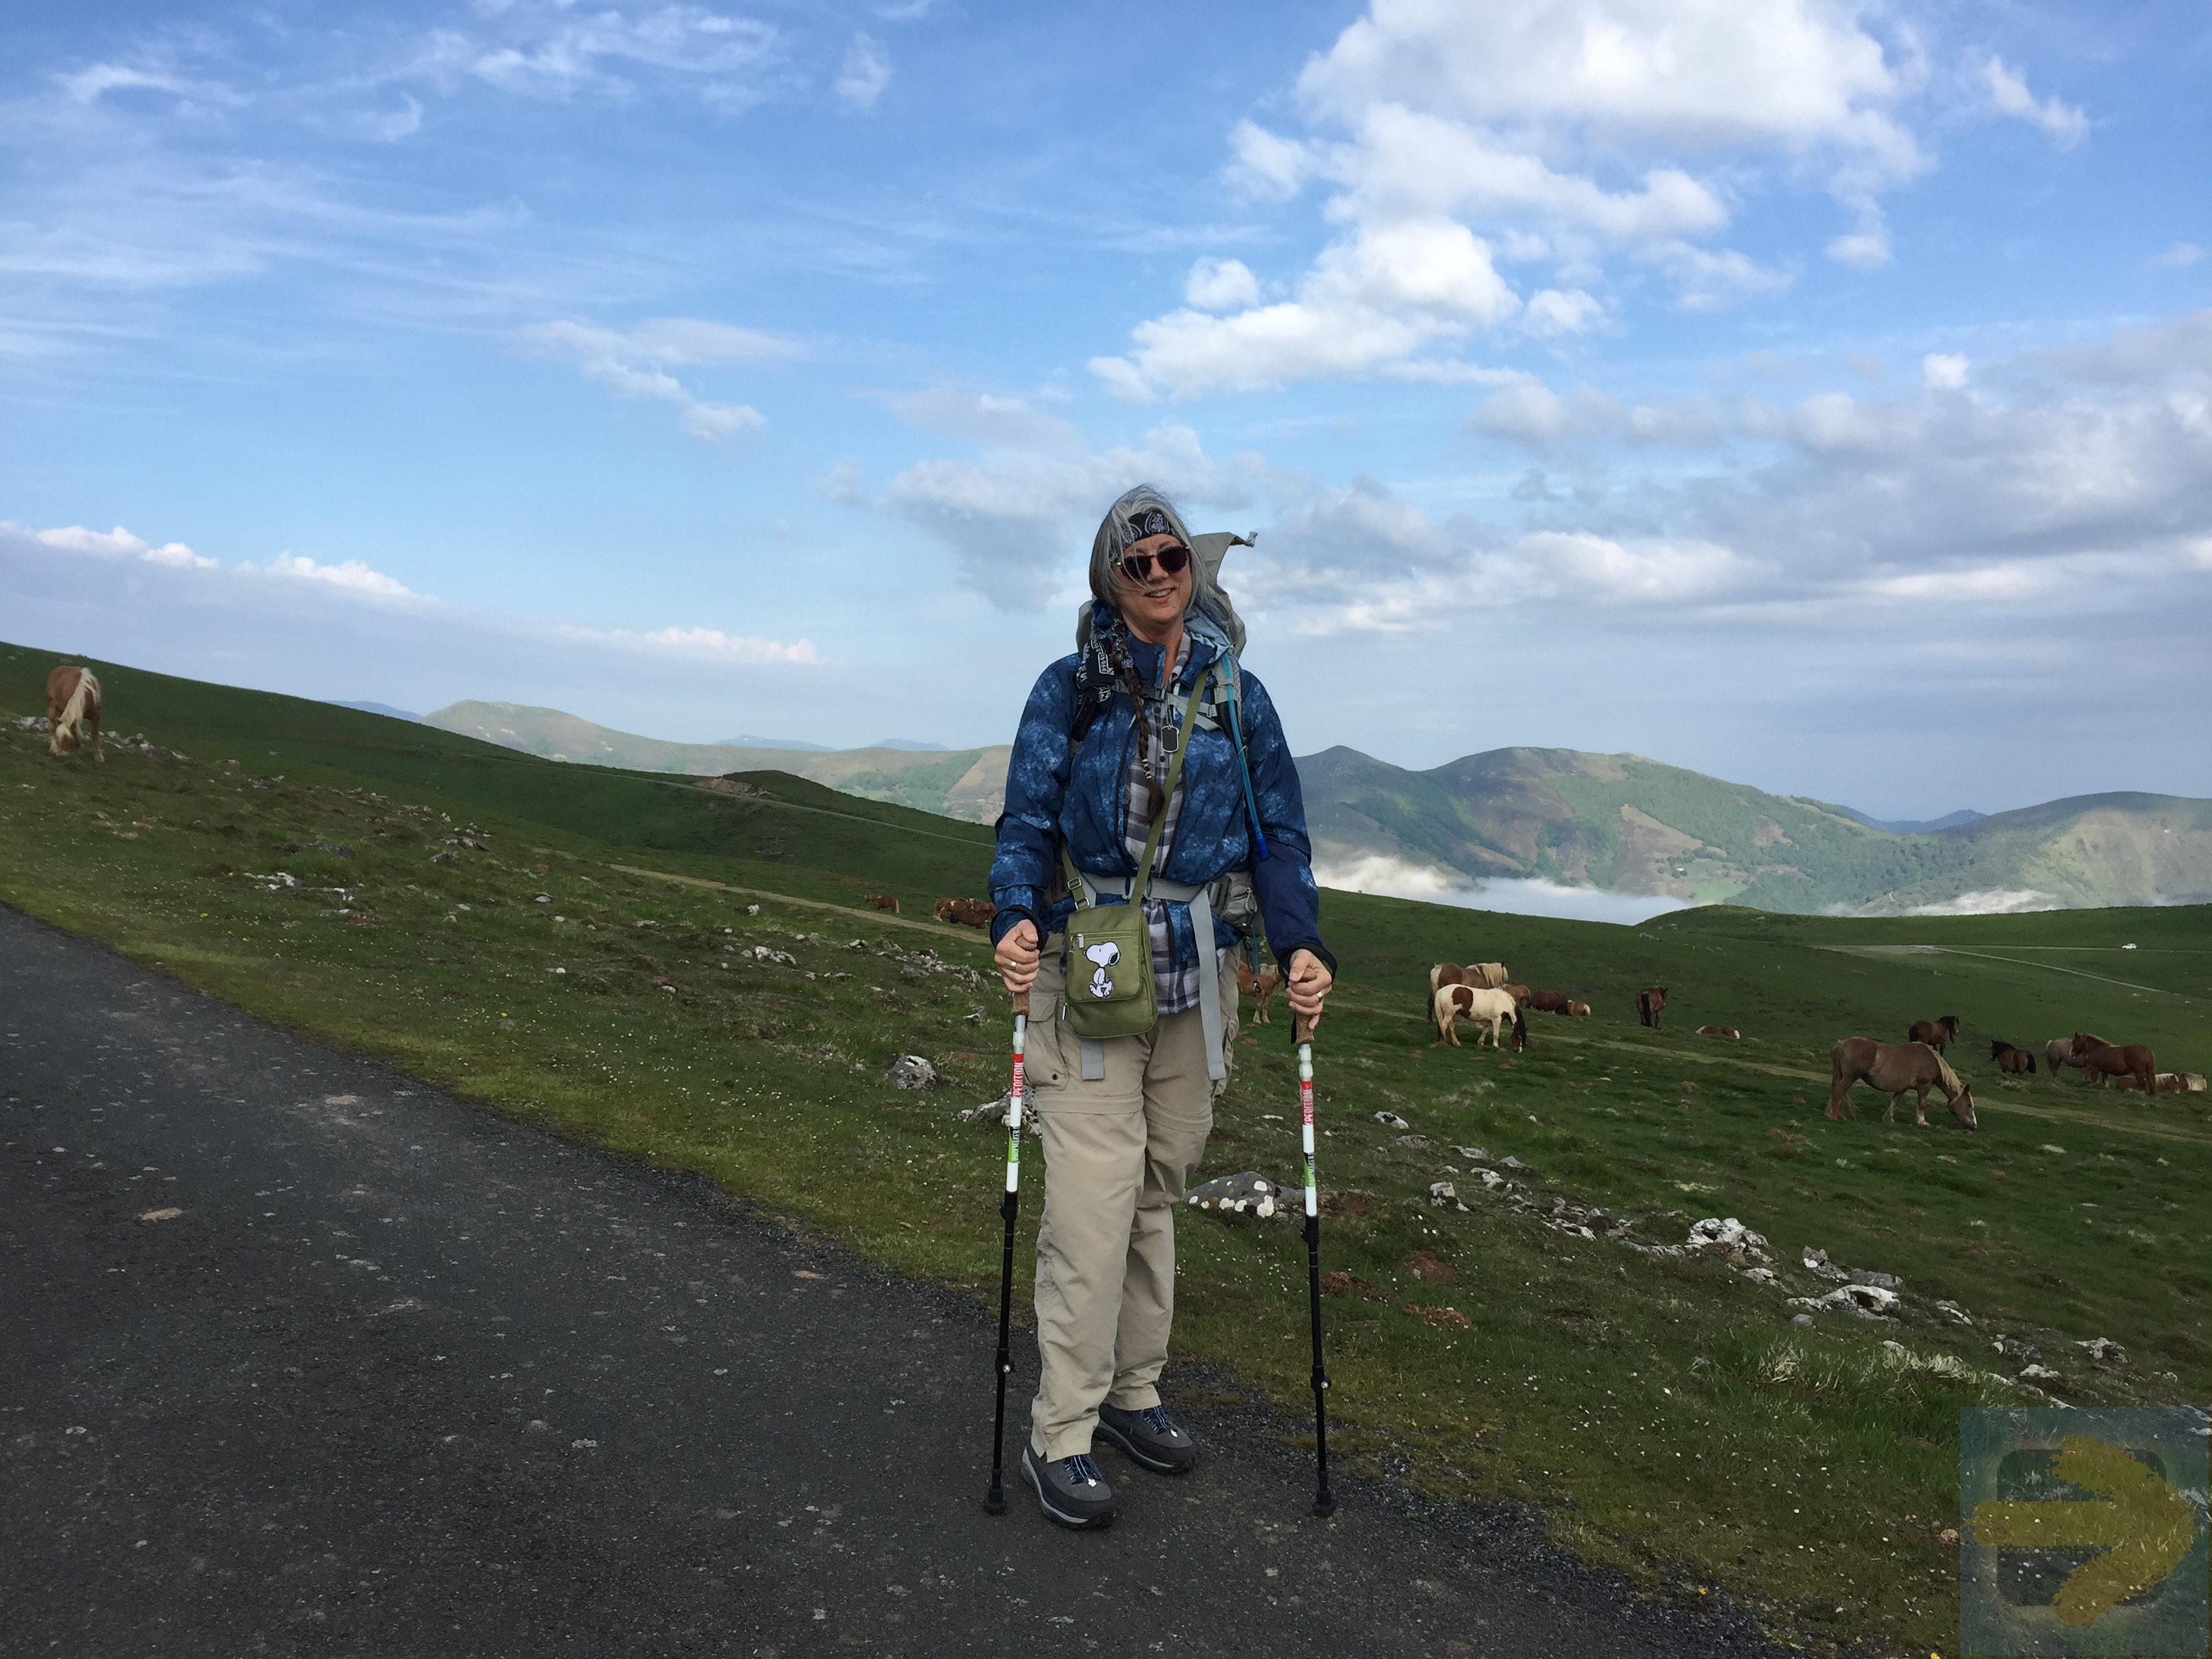 Above the clouds ~ trekking through the Pyrenees May 2016